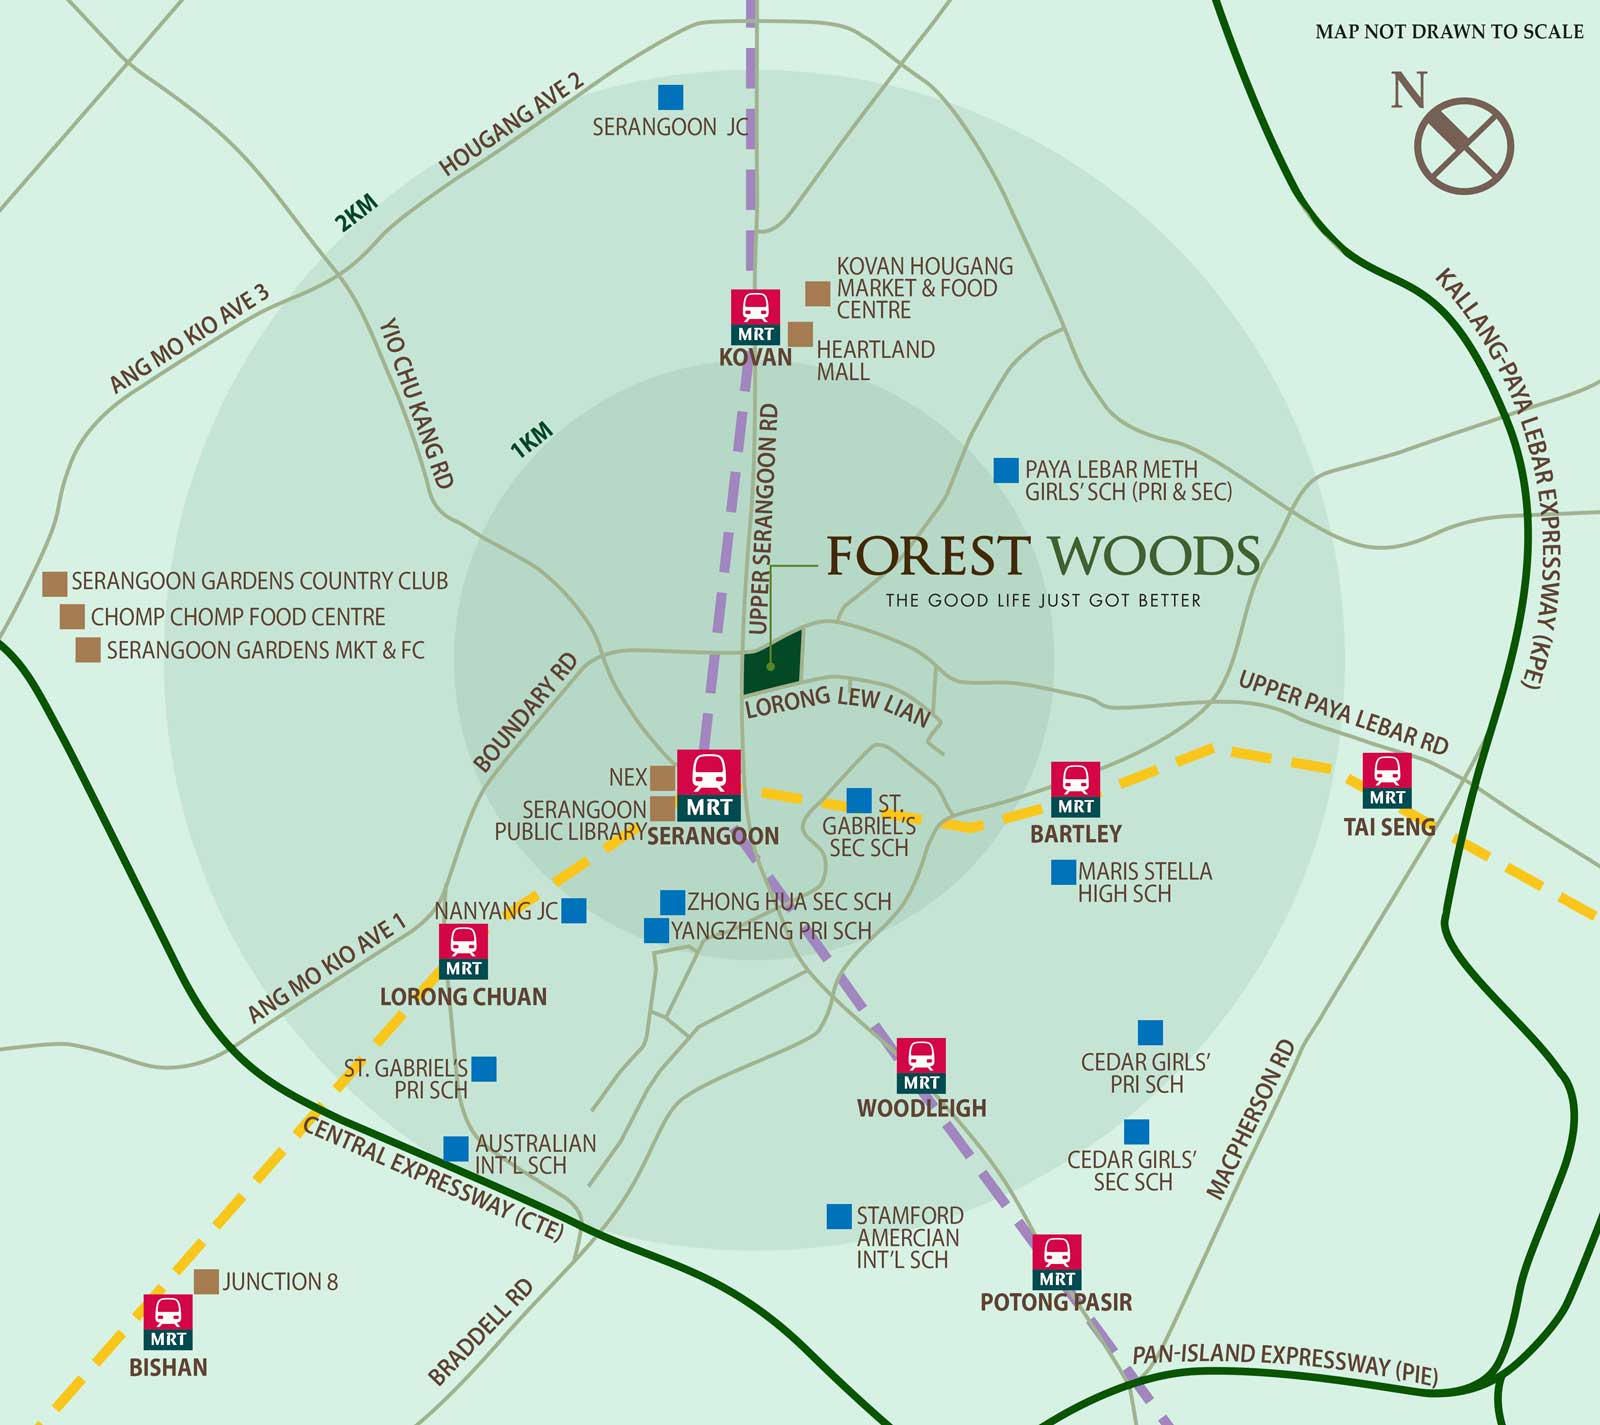 Location Map of Forest Woods at Serangoon